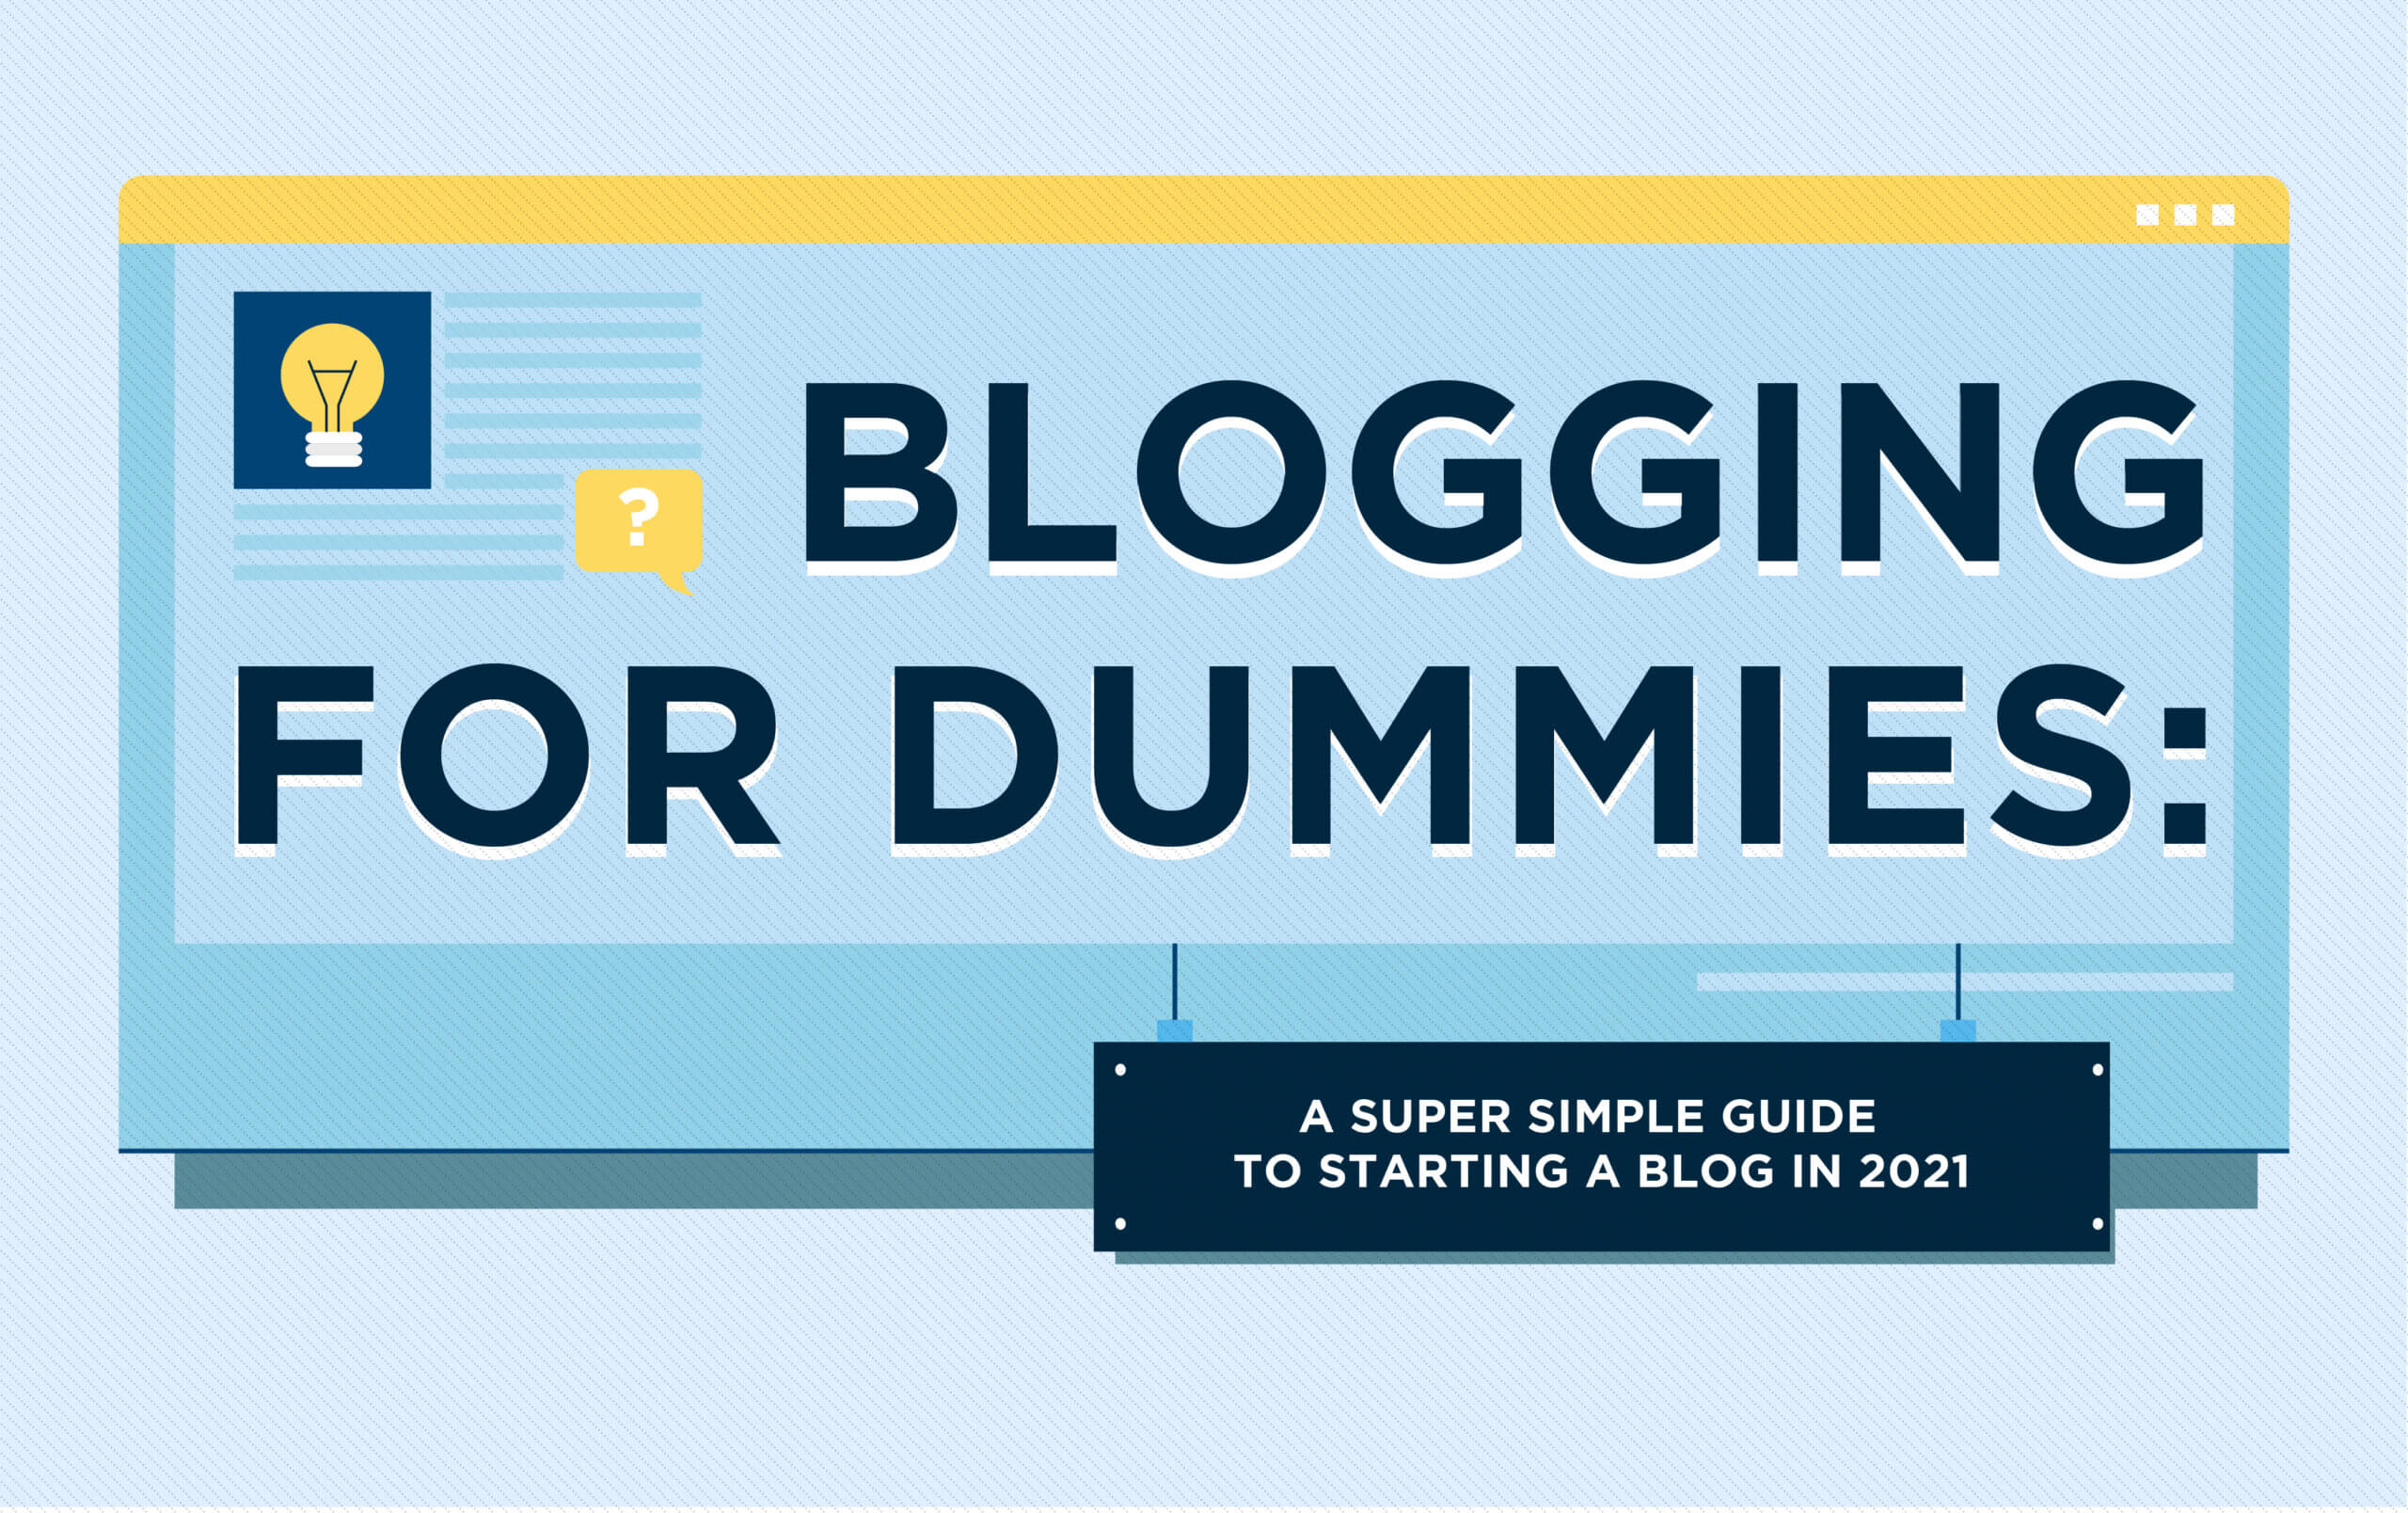 Blogging for Dummies (Simple Guide to Starting a Blog for Beginners)